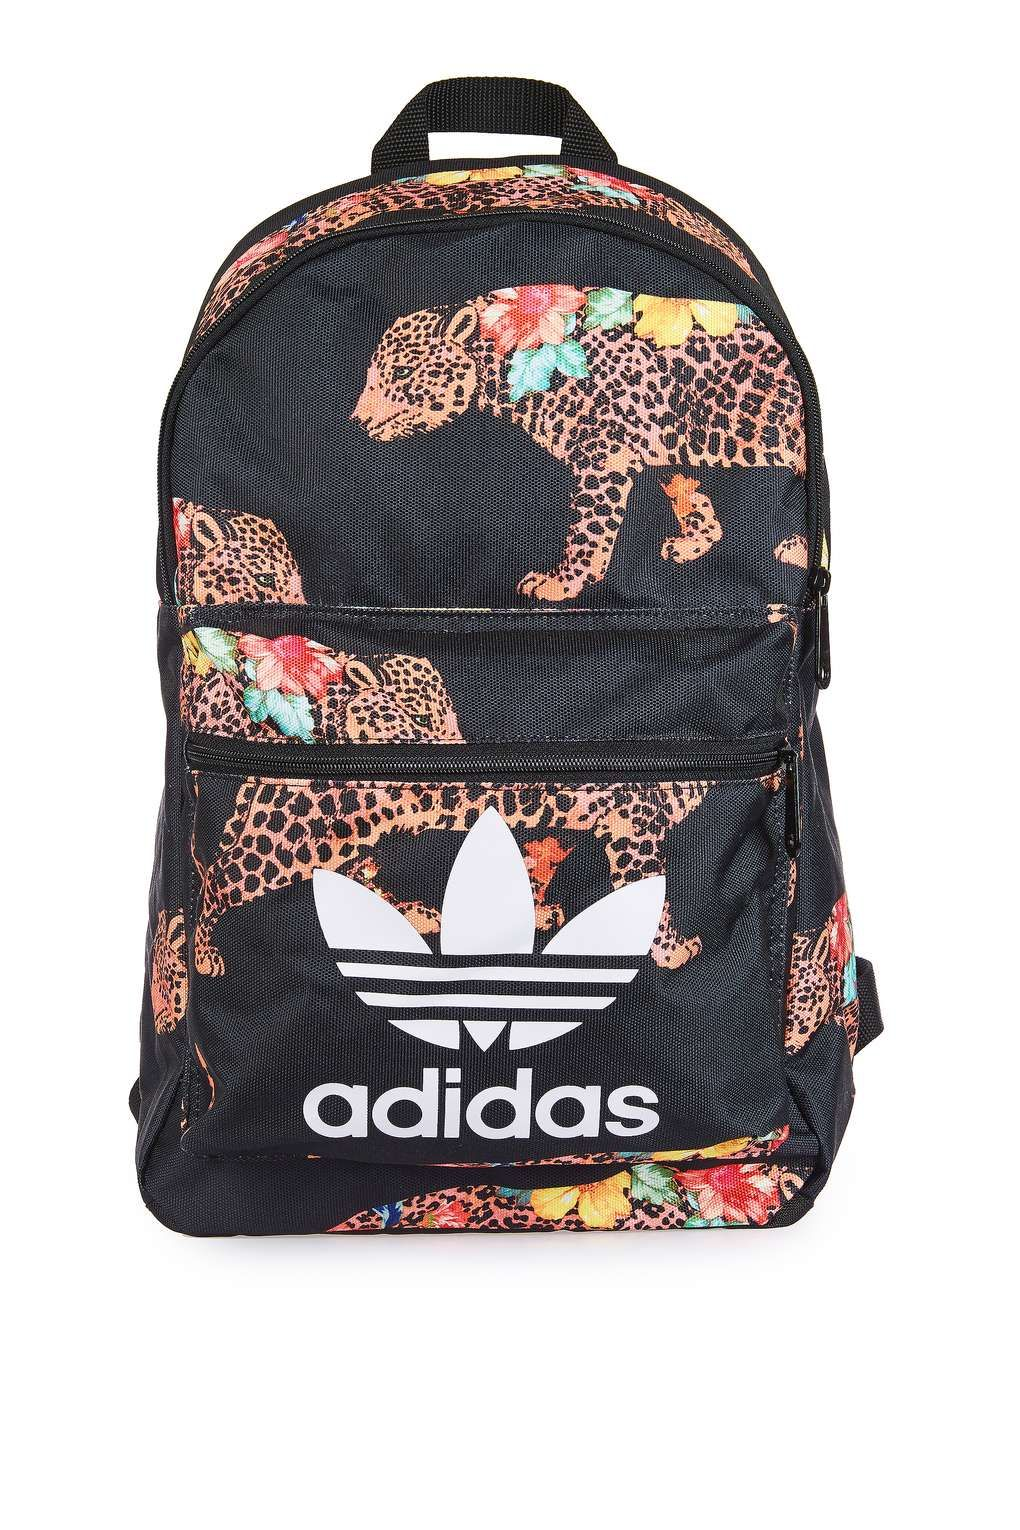 4b1316de6a3c ONCADA Backpack by Adidas Originals in 2019